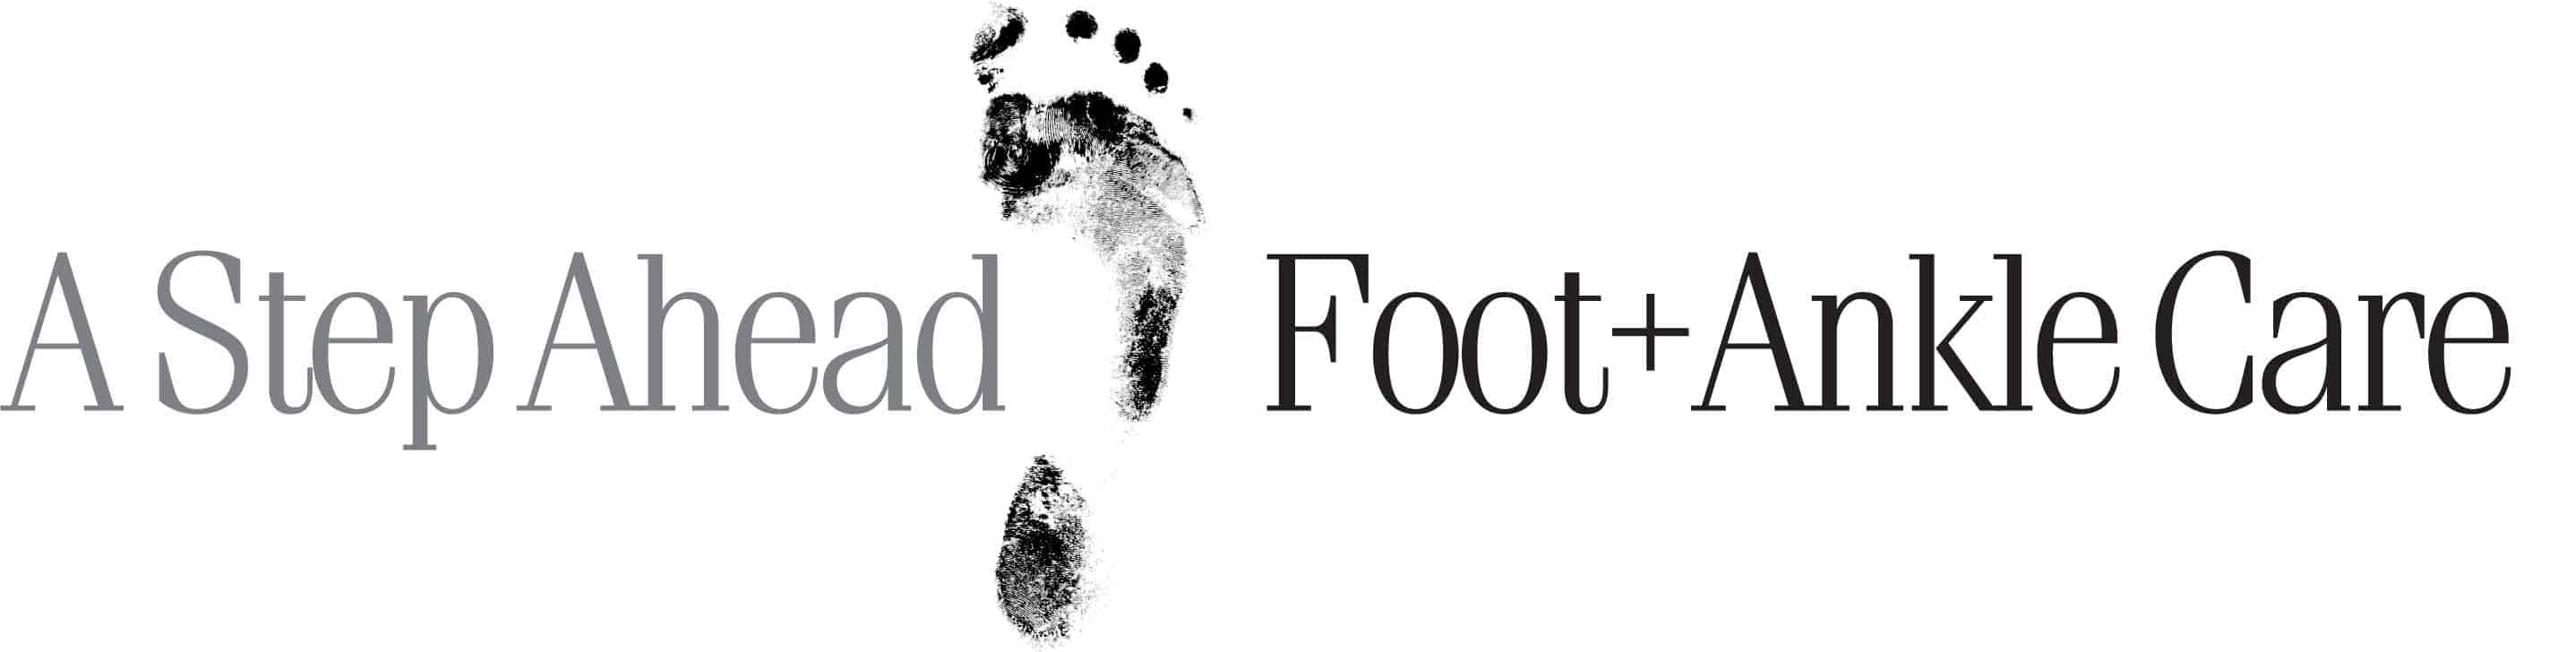 A Step Ahead Podiatry